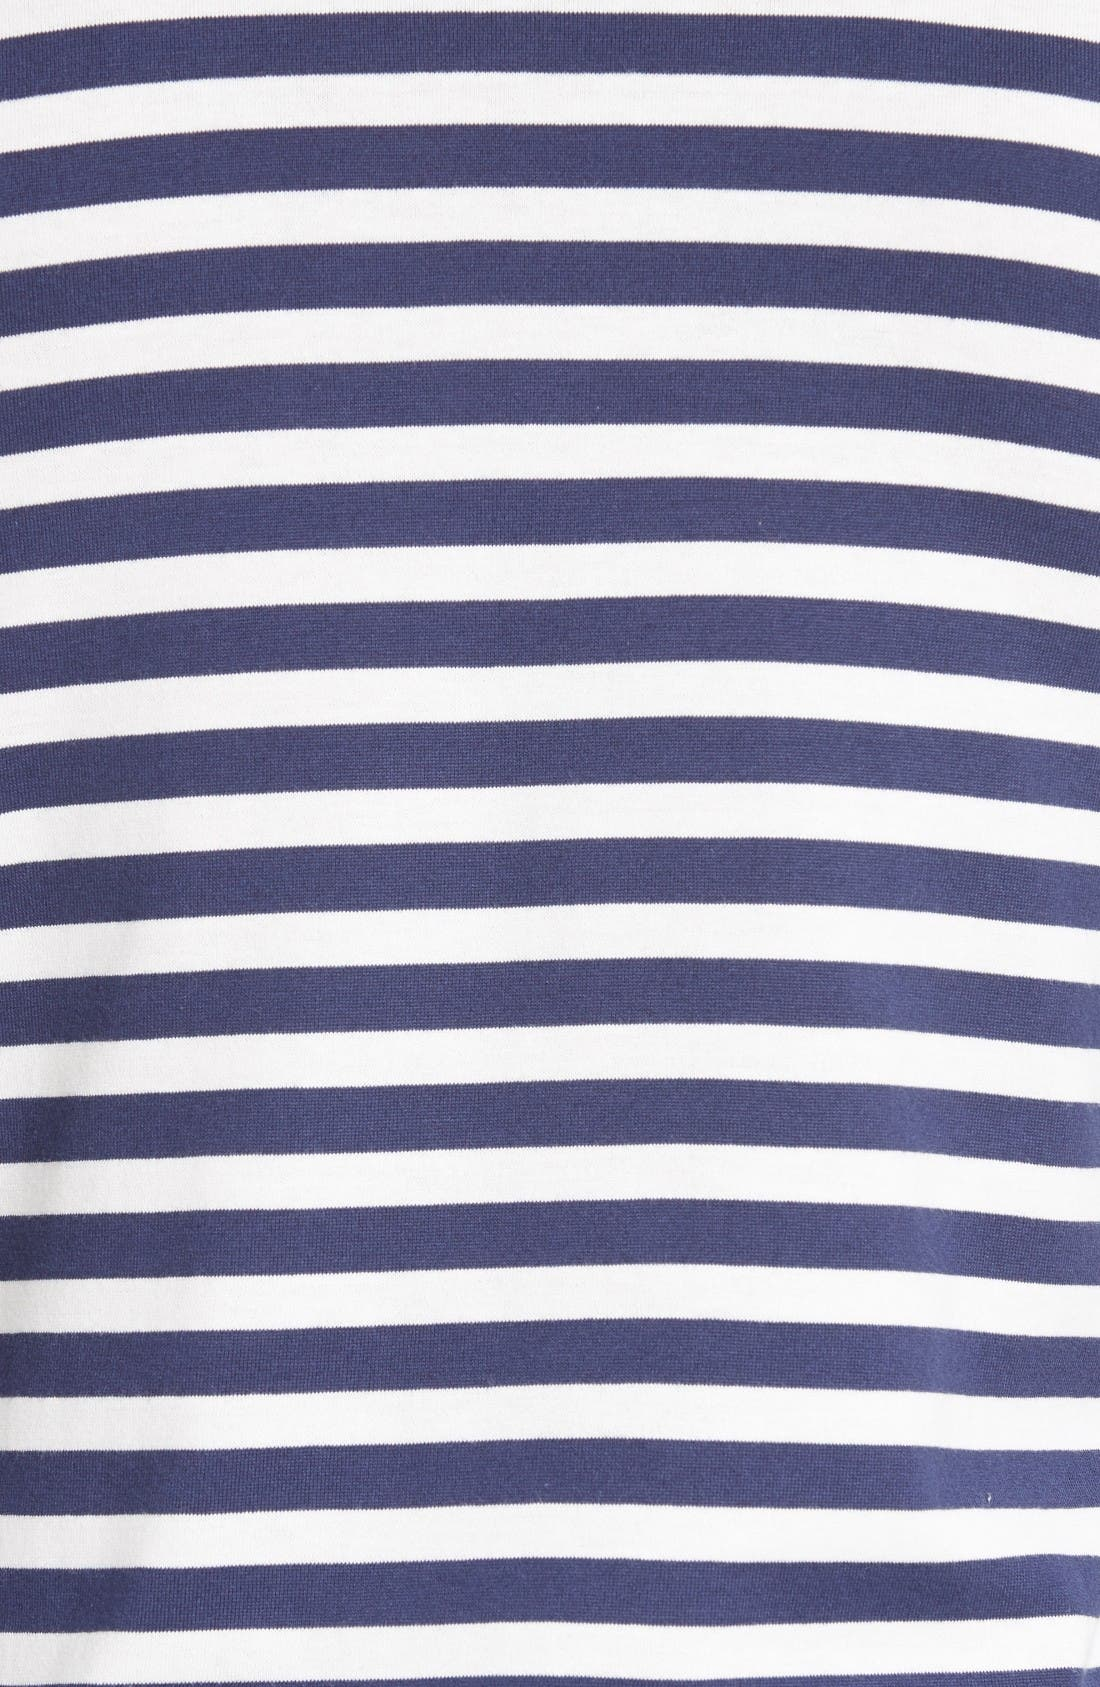 PLAY Stripe T-Shirt,                             Alternate thumbnail 5, color,                             Navy/ White